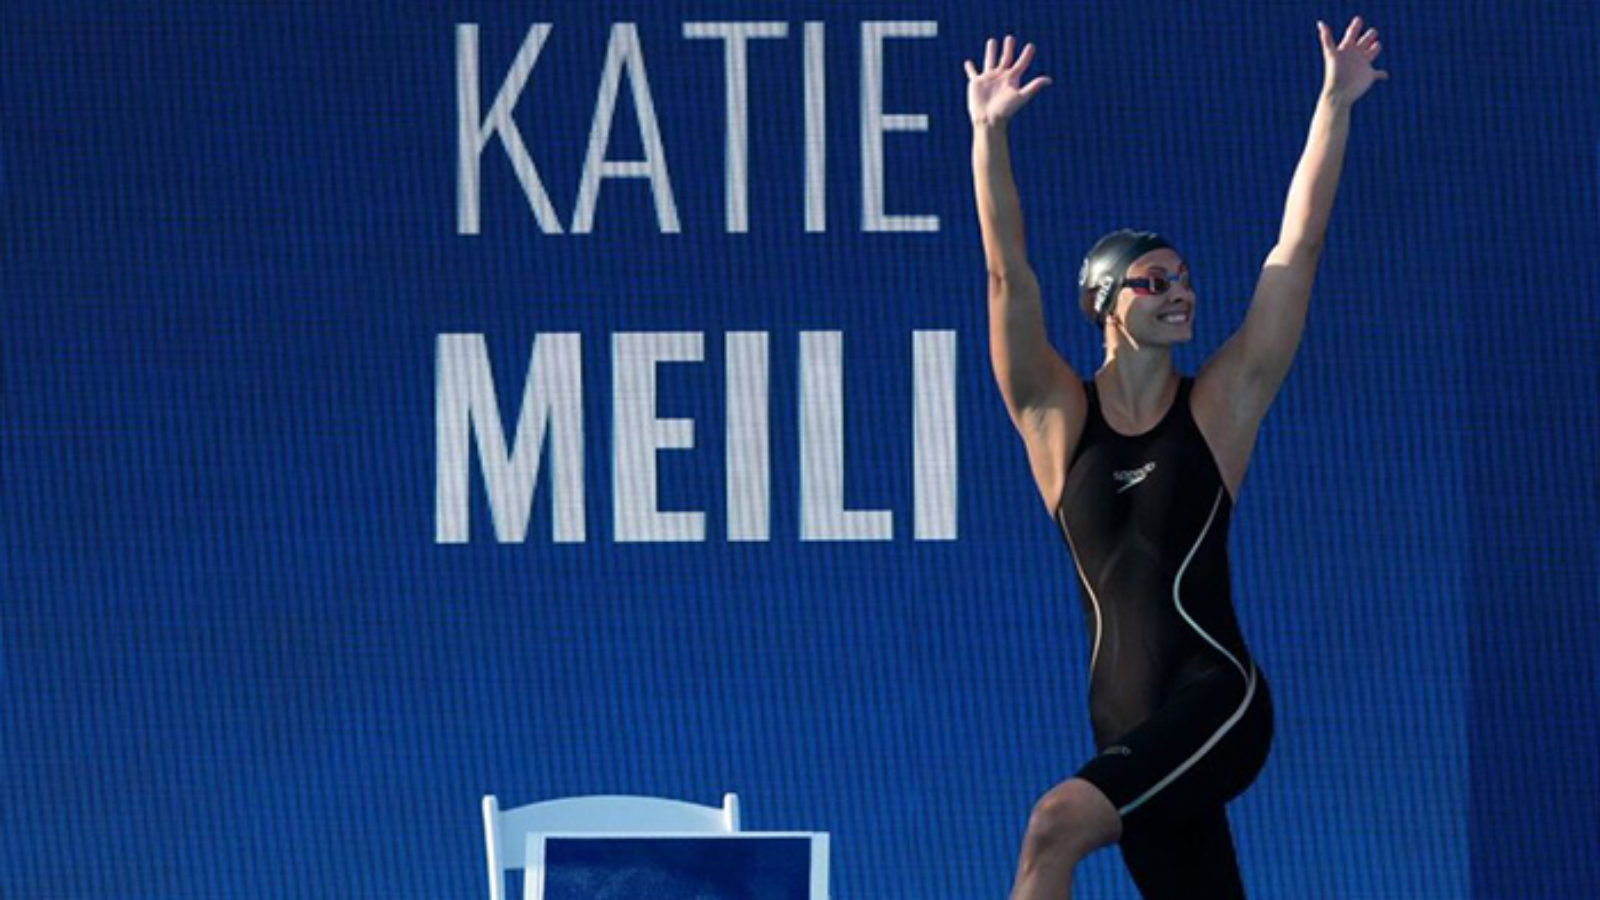 Katie Meili in swimsuit and bathing cap with her arms raised in front of a banner with her name on it